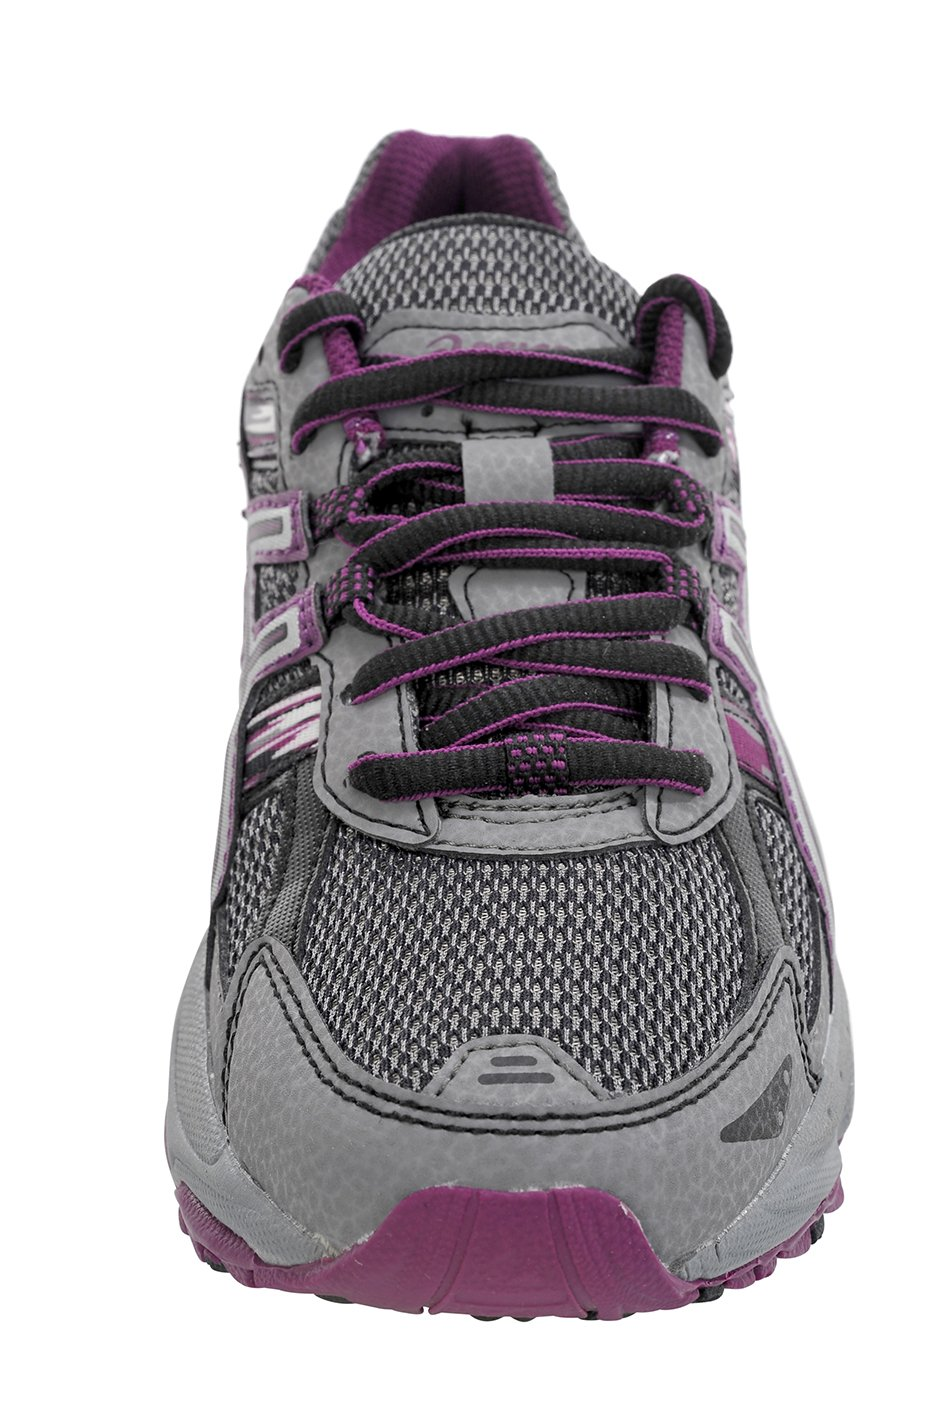 ASICS Women's Gel-Venture 5 Trail Running Shoe, Frost Gray/Gray/Silver/Magenta, 6 M US by ASICS (Image #2)